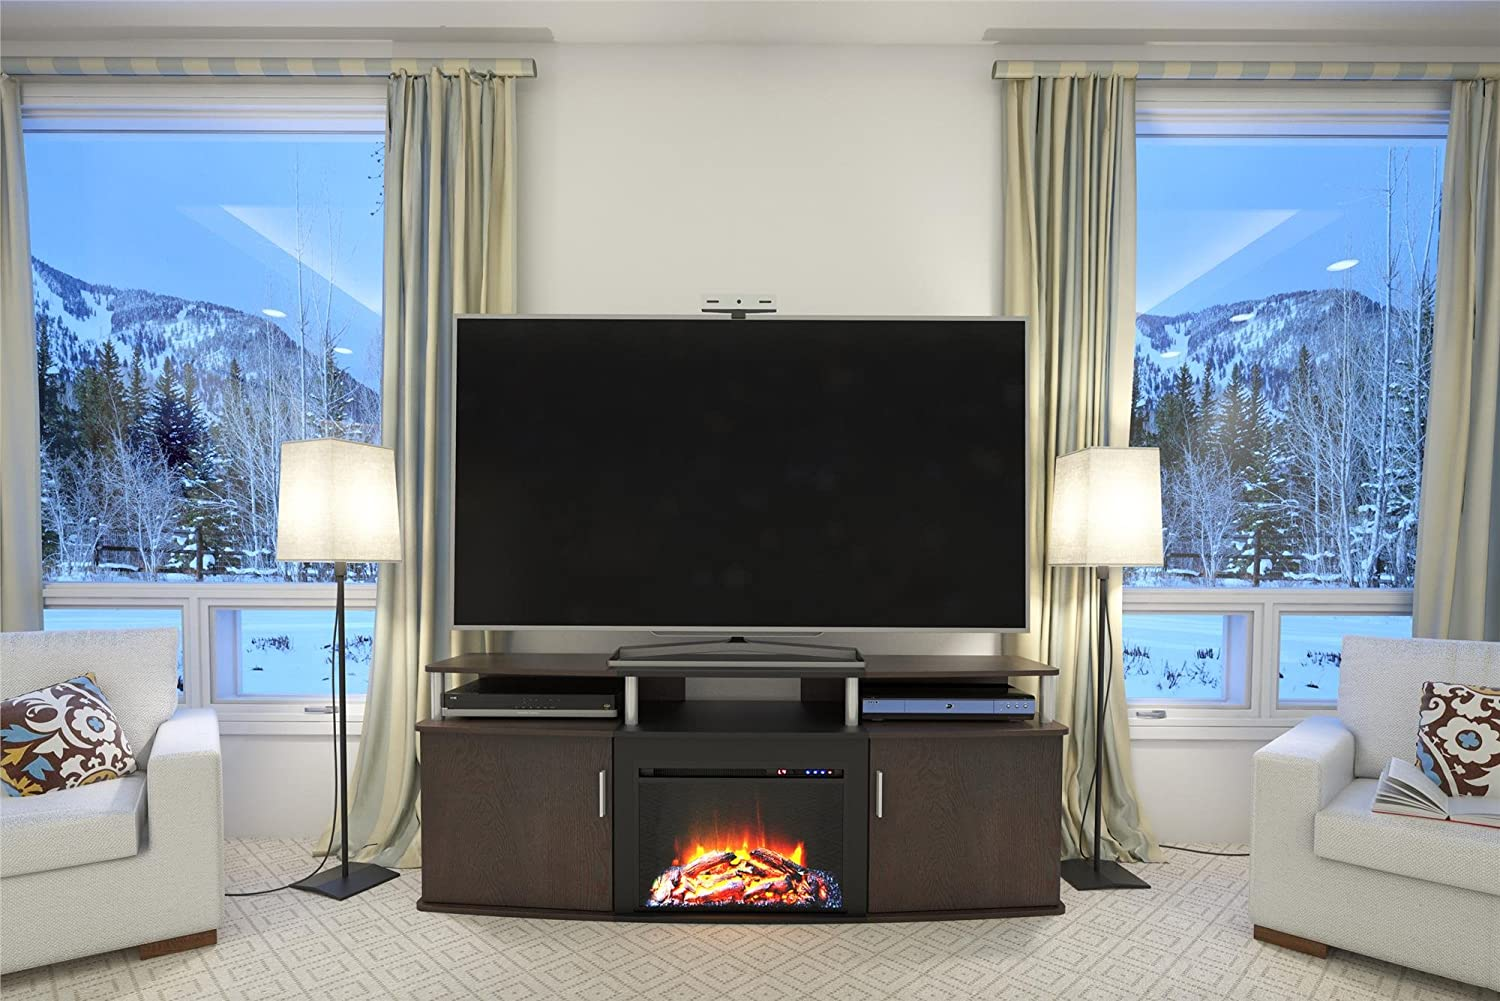 Large Electric Fireplace Entertainment Center Good Better Best March 2018